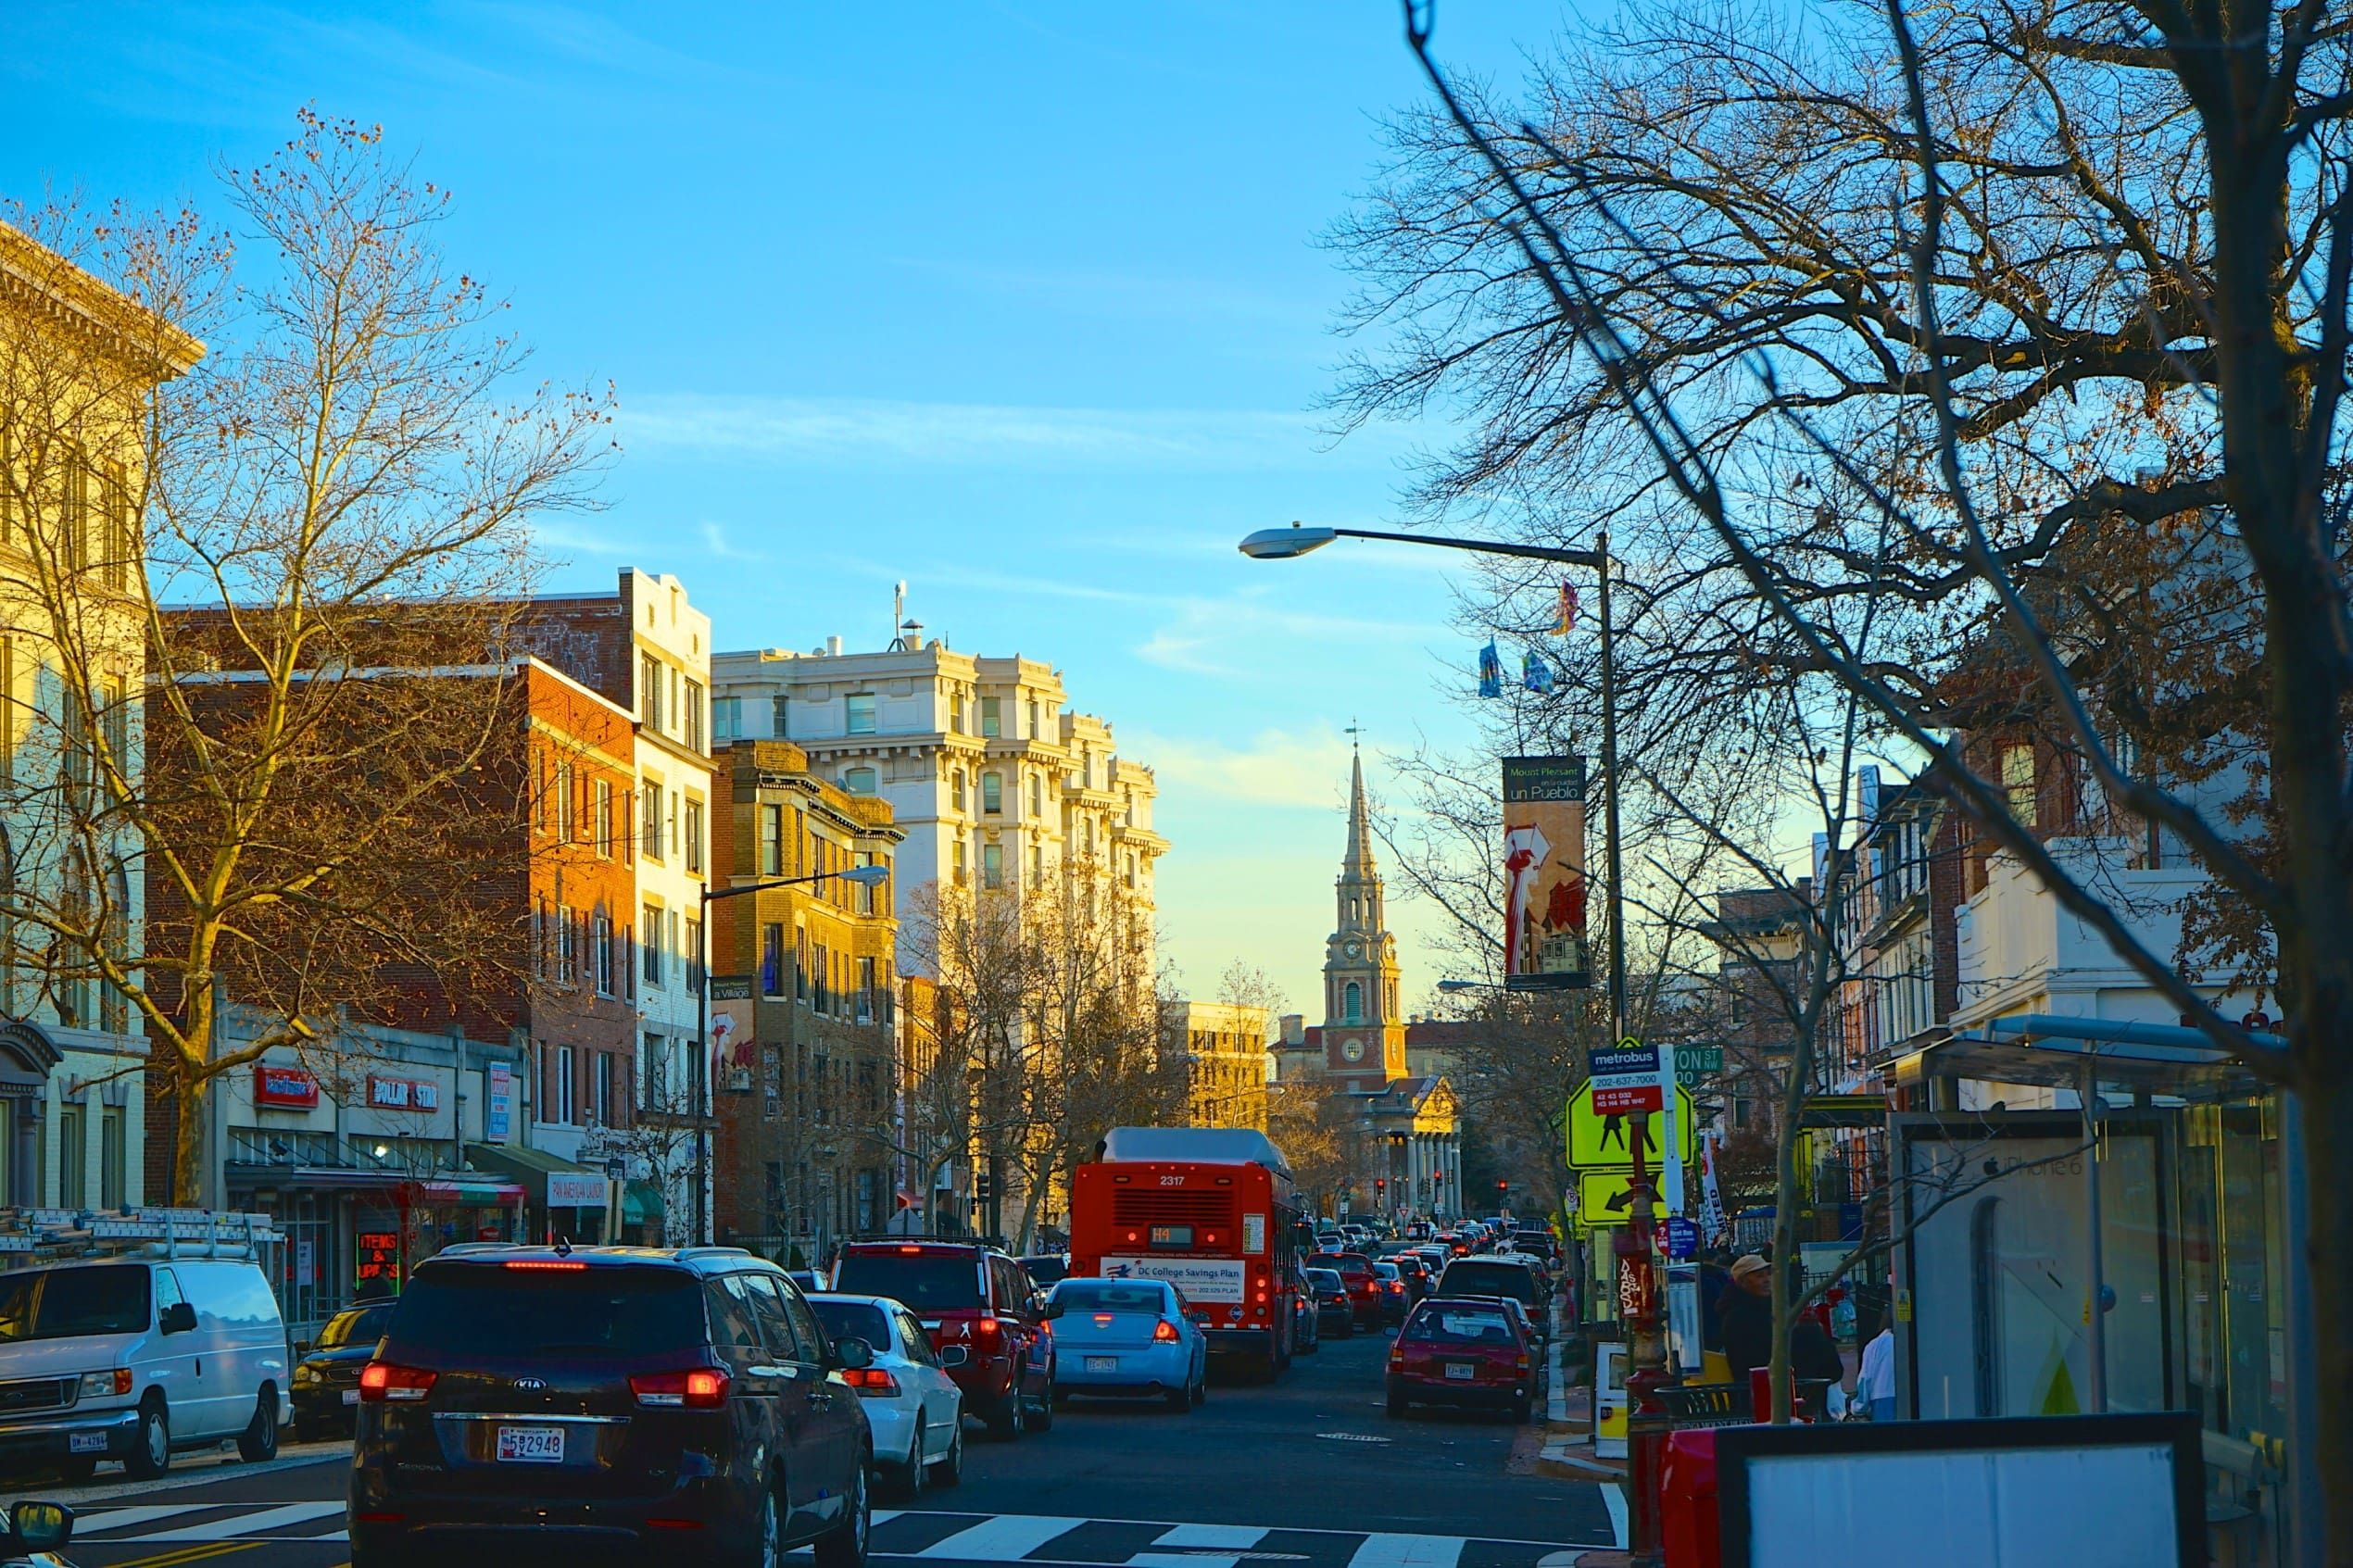 a view of Mount Pleasant in Washington DC, as seen from the street level